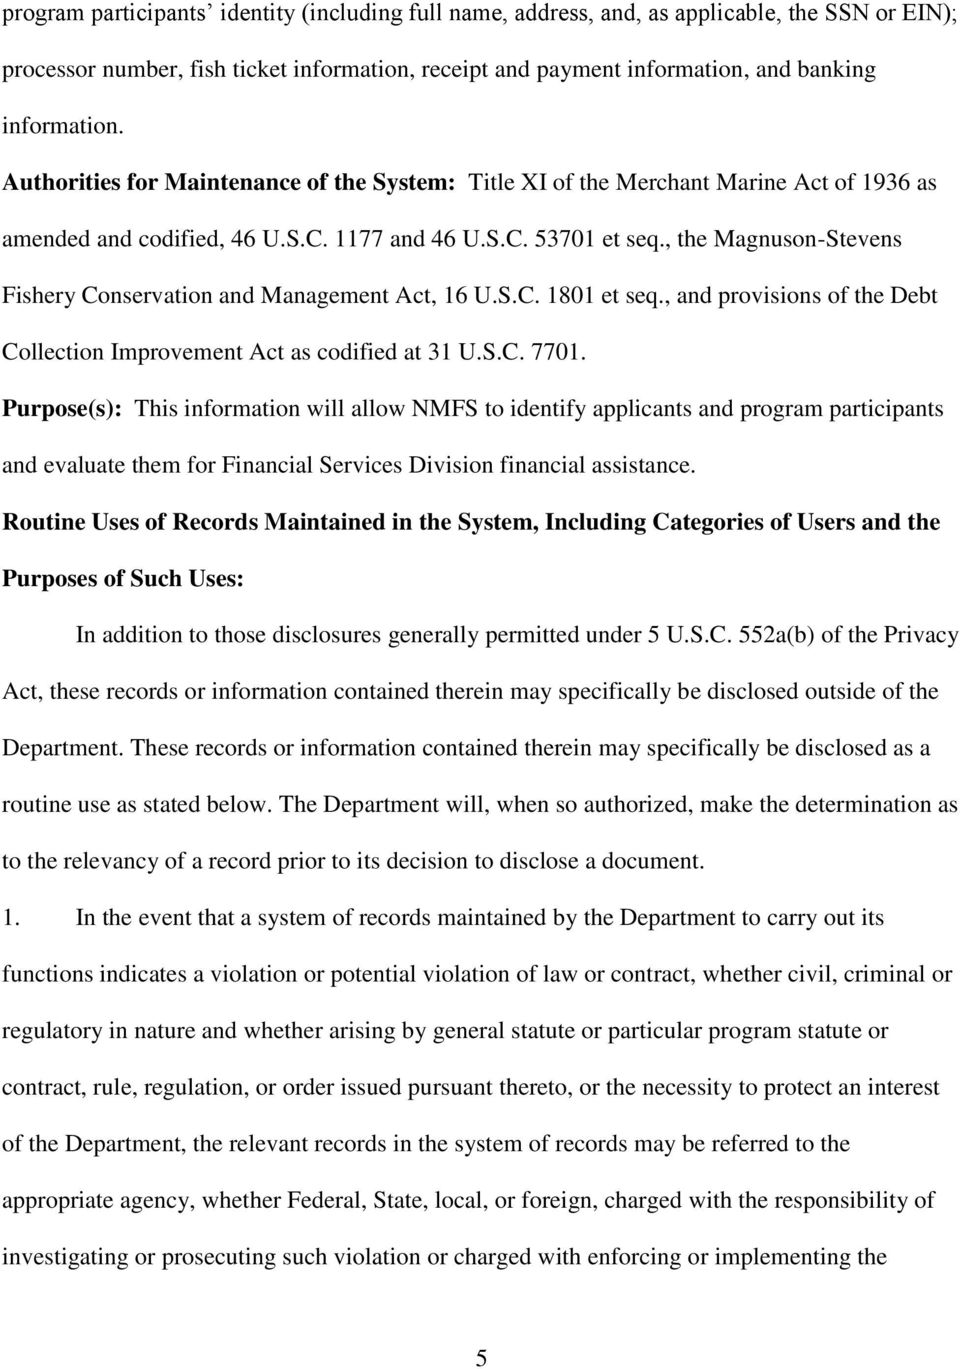 , the Magnuson-Stevens Fishery Conservation and Management Act, 16 U.S.C. 1801 et seq., and provisions of the Debt Collection Improvement Act as codified at 31 U.S.C. 7701.